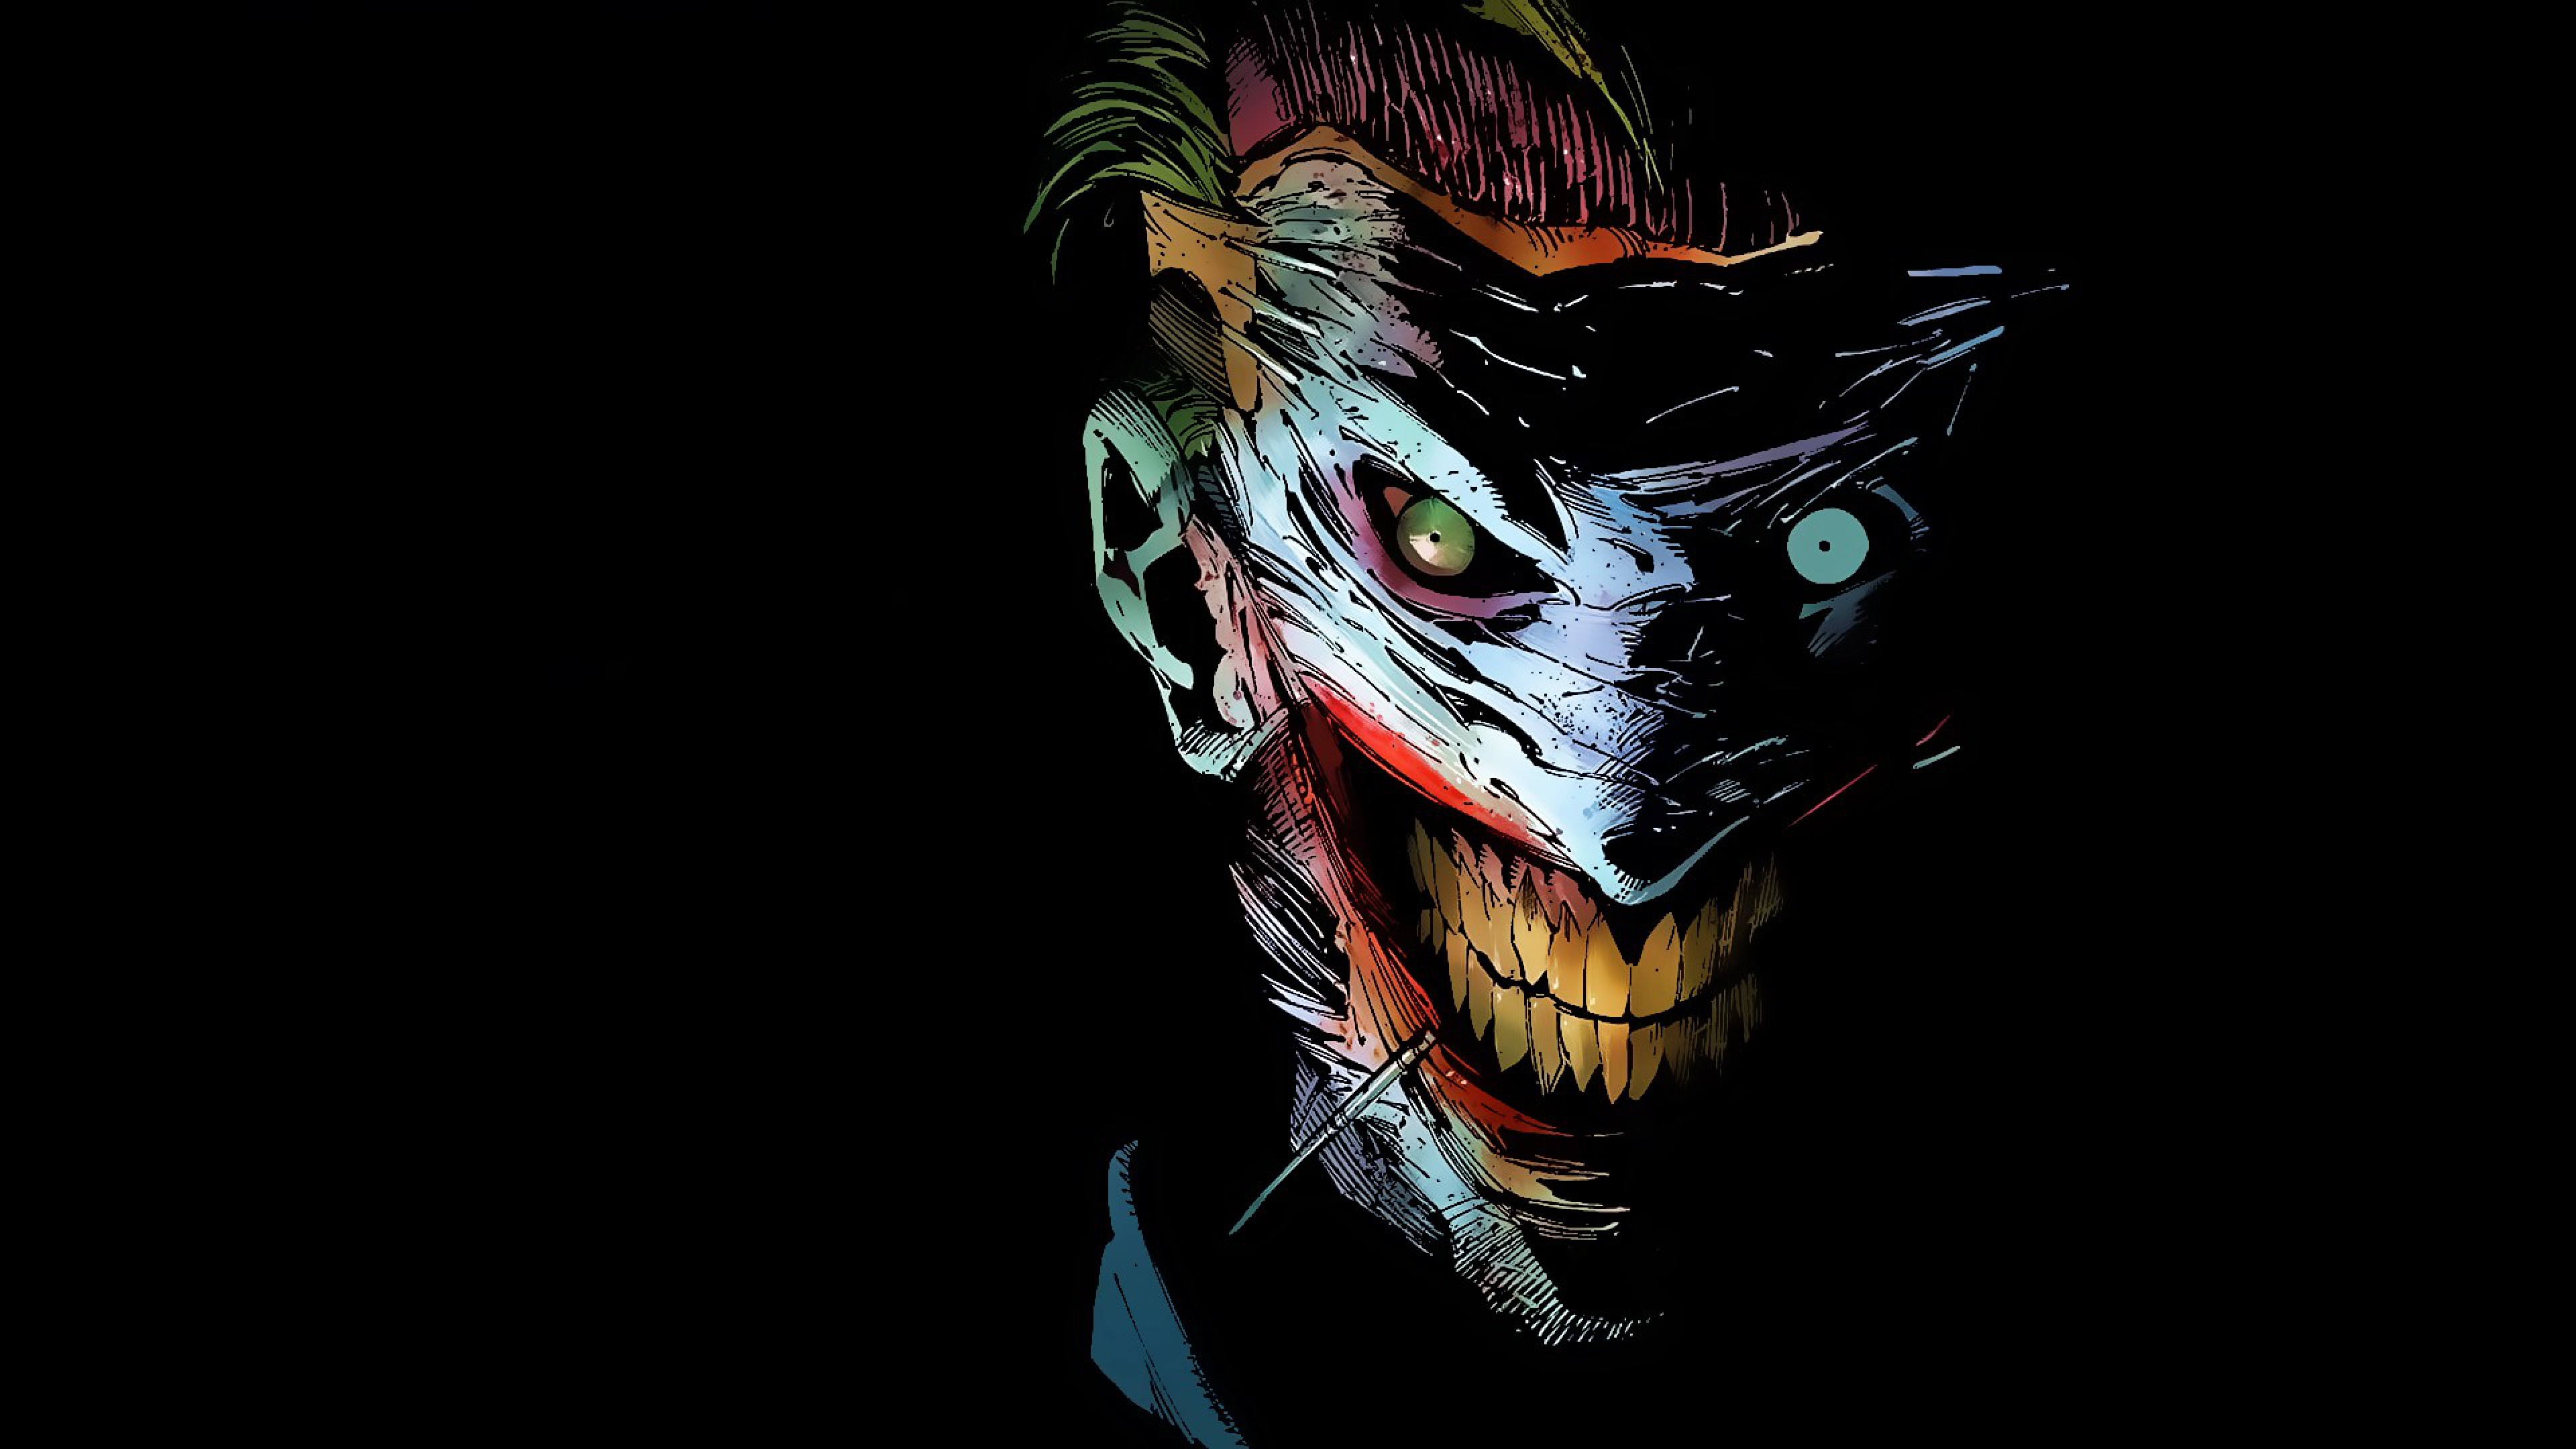 804 Joker HD Wallpapers